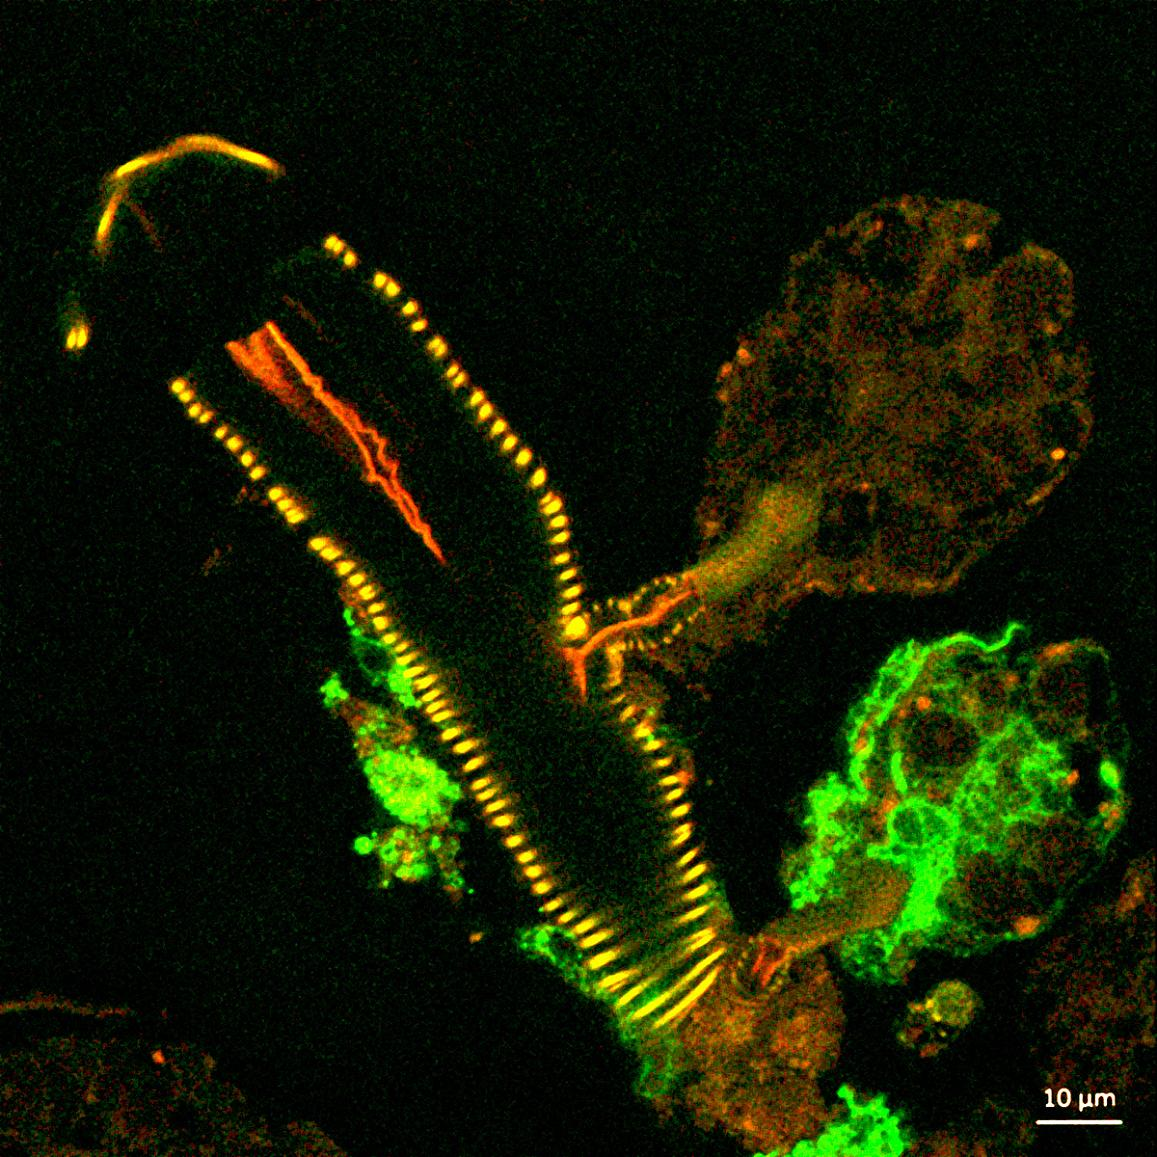 confocal microscope image showing a cross section of a tick salivary gland infected with Langat virus